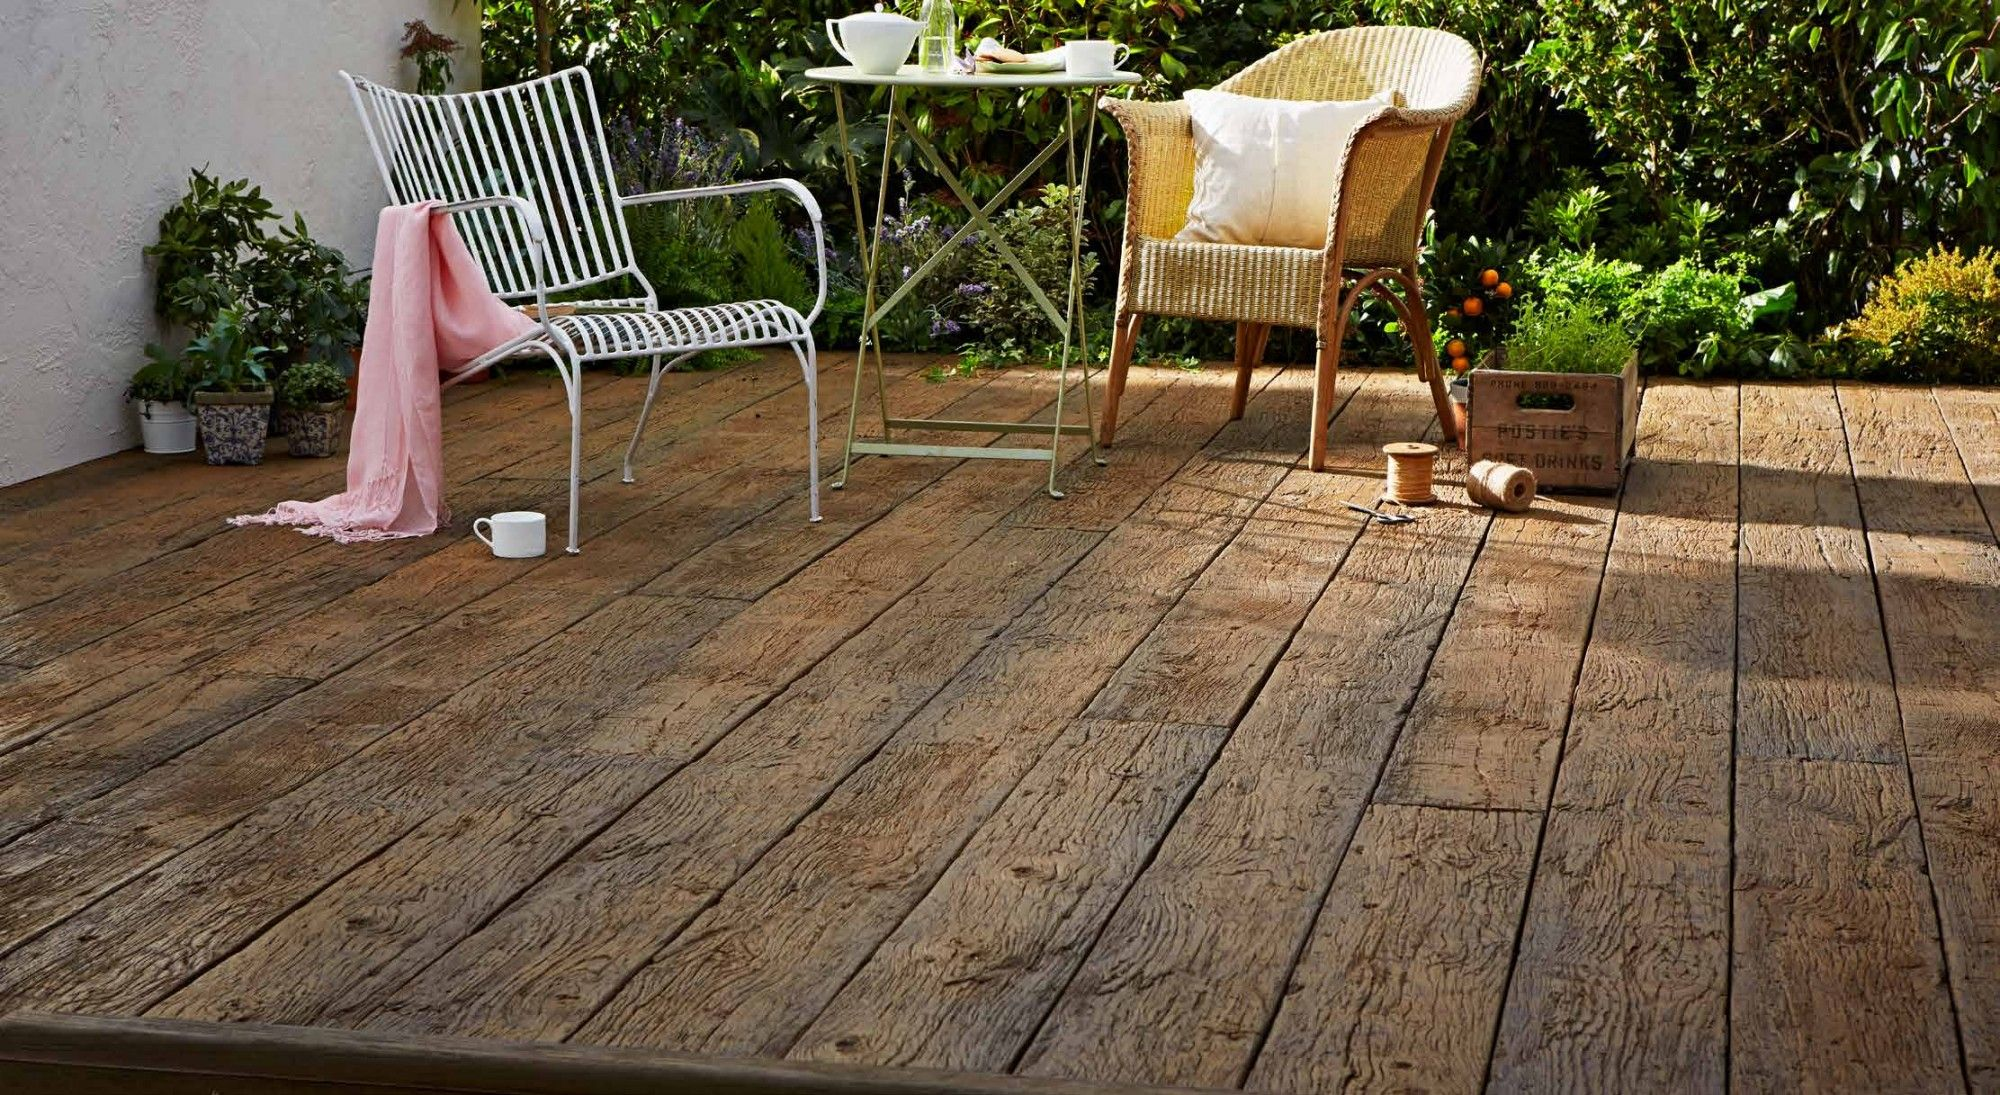 Millboard garden decking example type weathered oak taken from